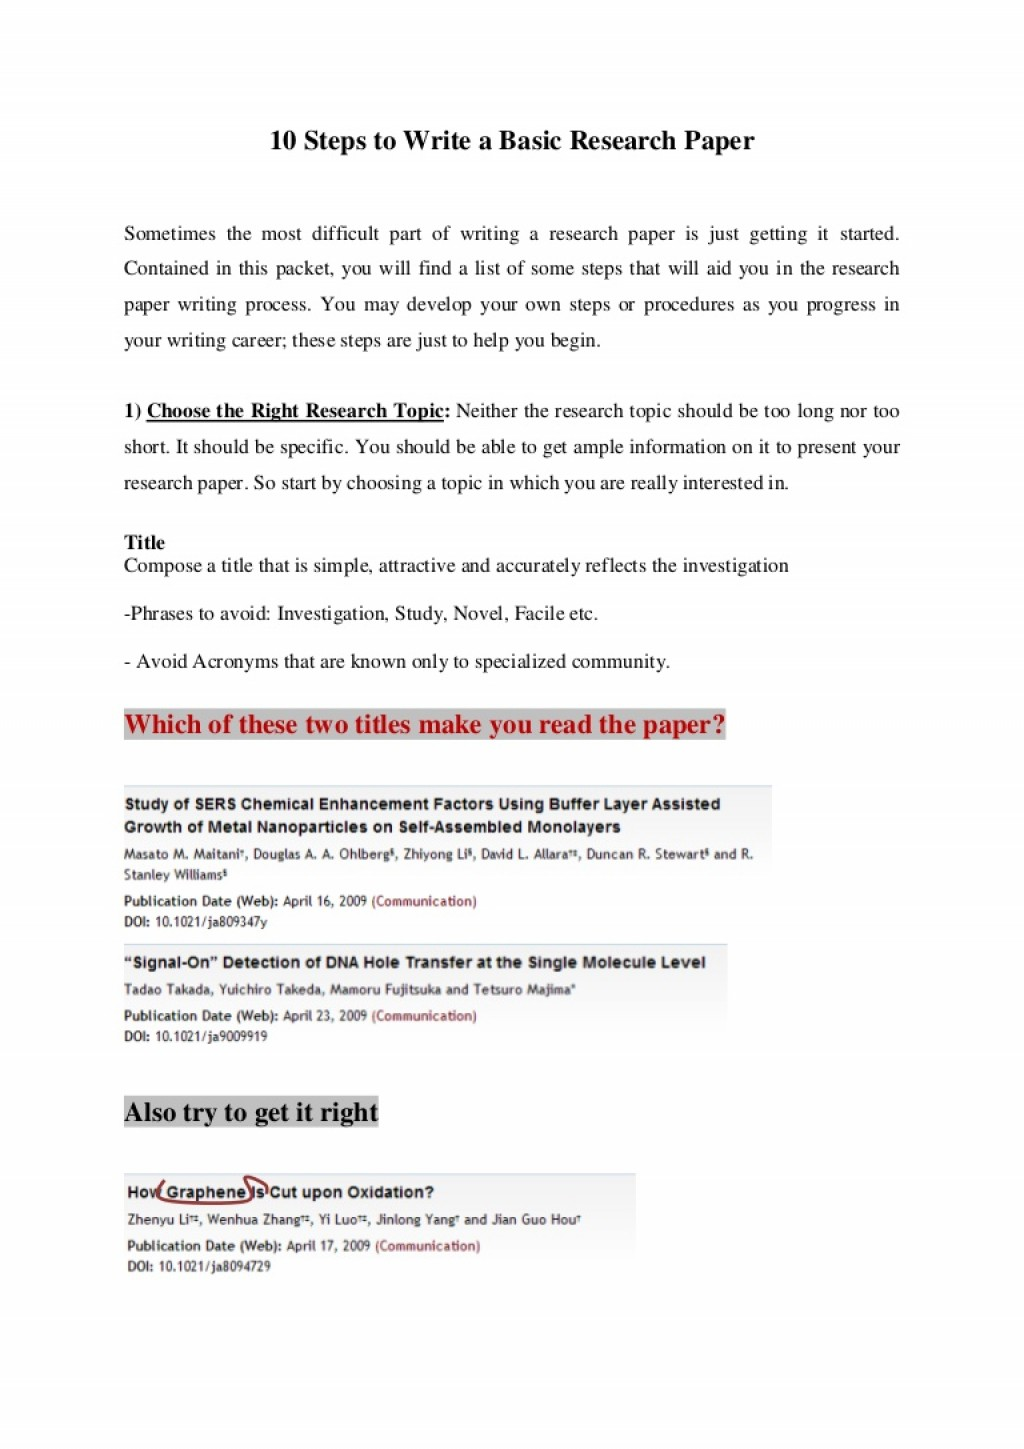 001 10stepstowriteabasicresearchpaper Thumbnail Research Paper Steps To Write Unbelievable 10 A Basic Writing Ppt Large